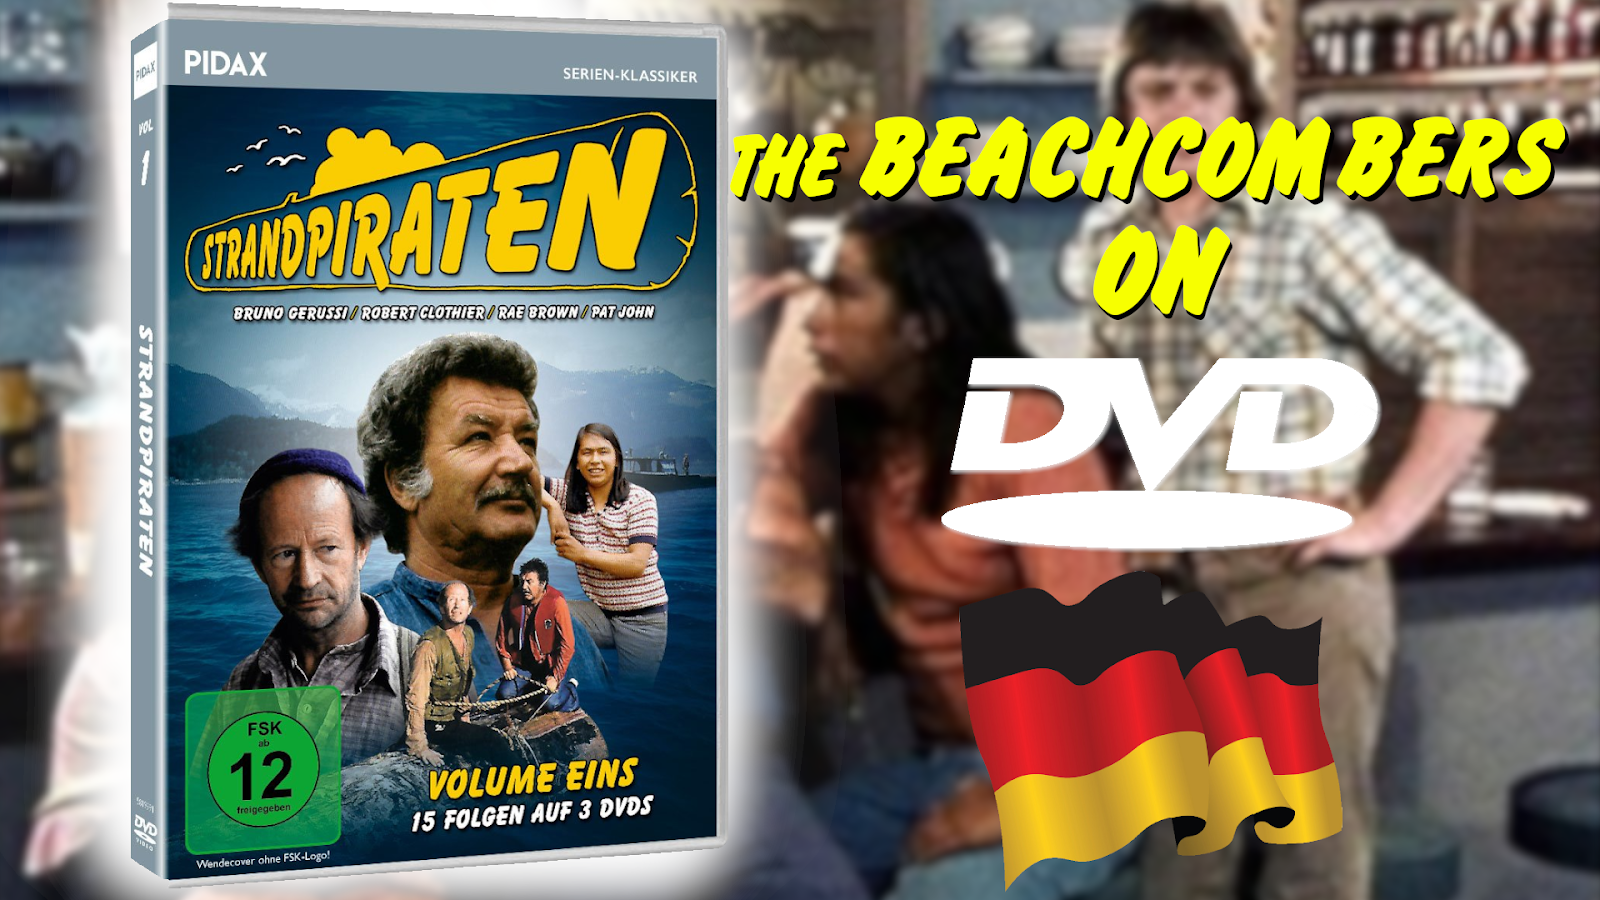 The Beachcombers (was supposed to be) On DVD (In Germany)